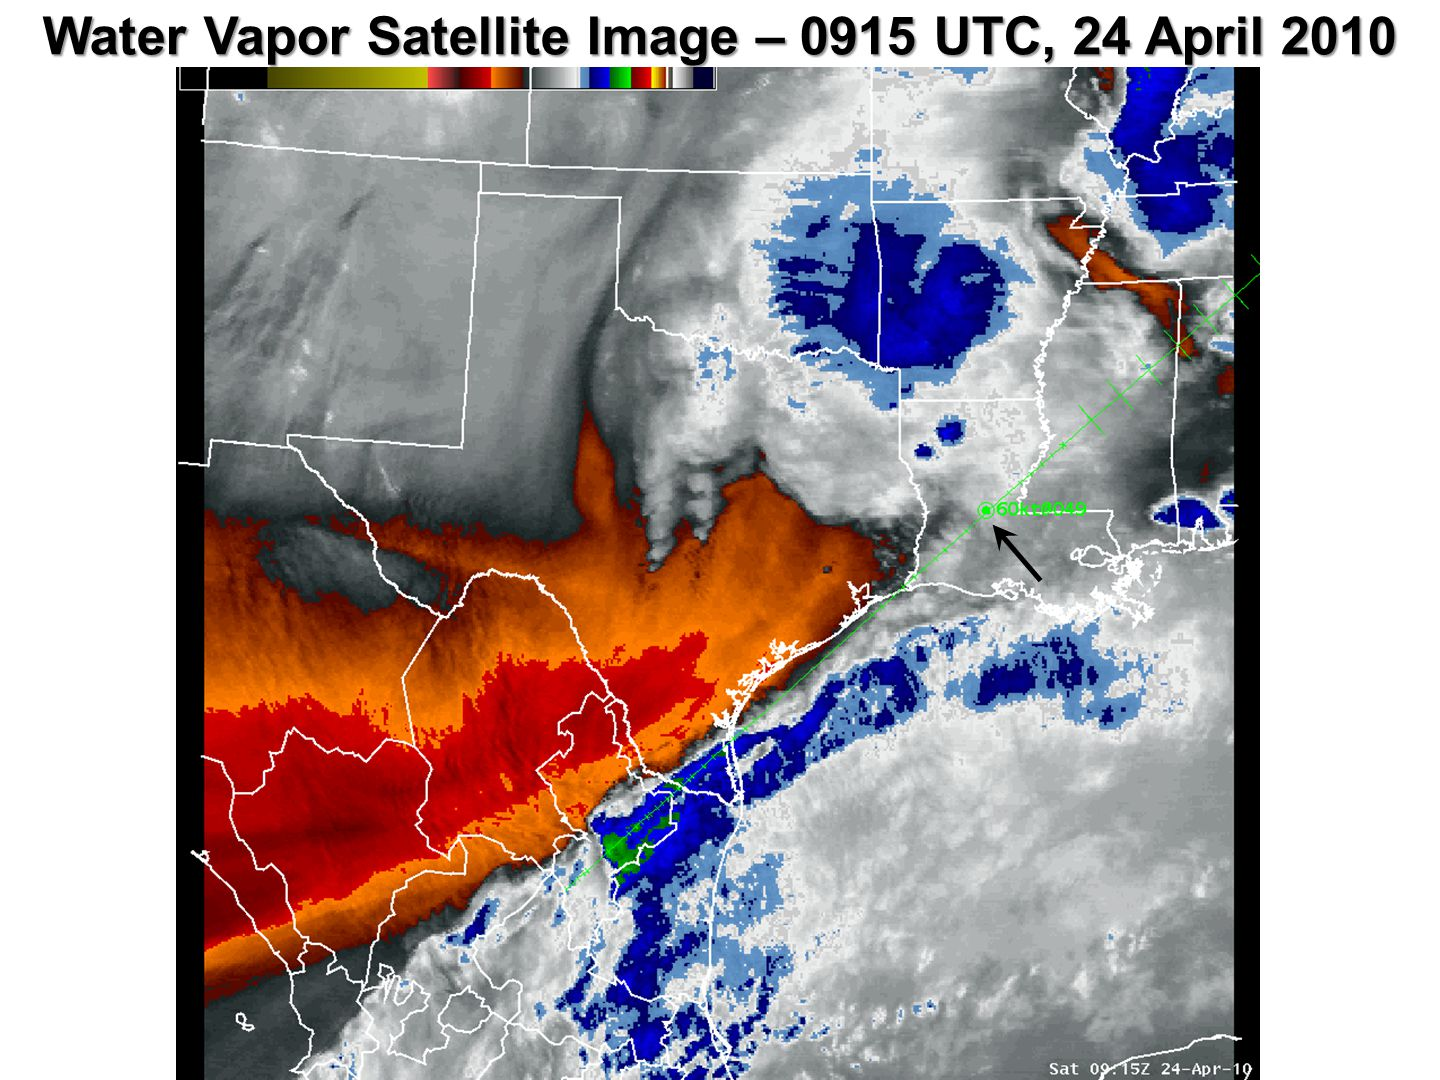 Water Vapor Satellite Image – 0915 UTC, 24 April 2010